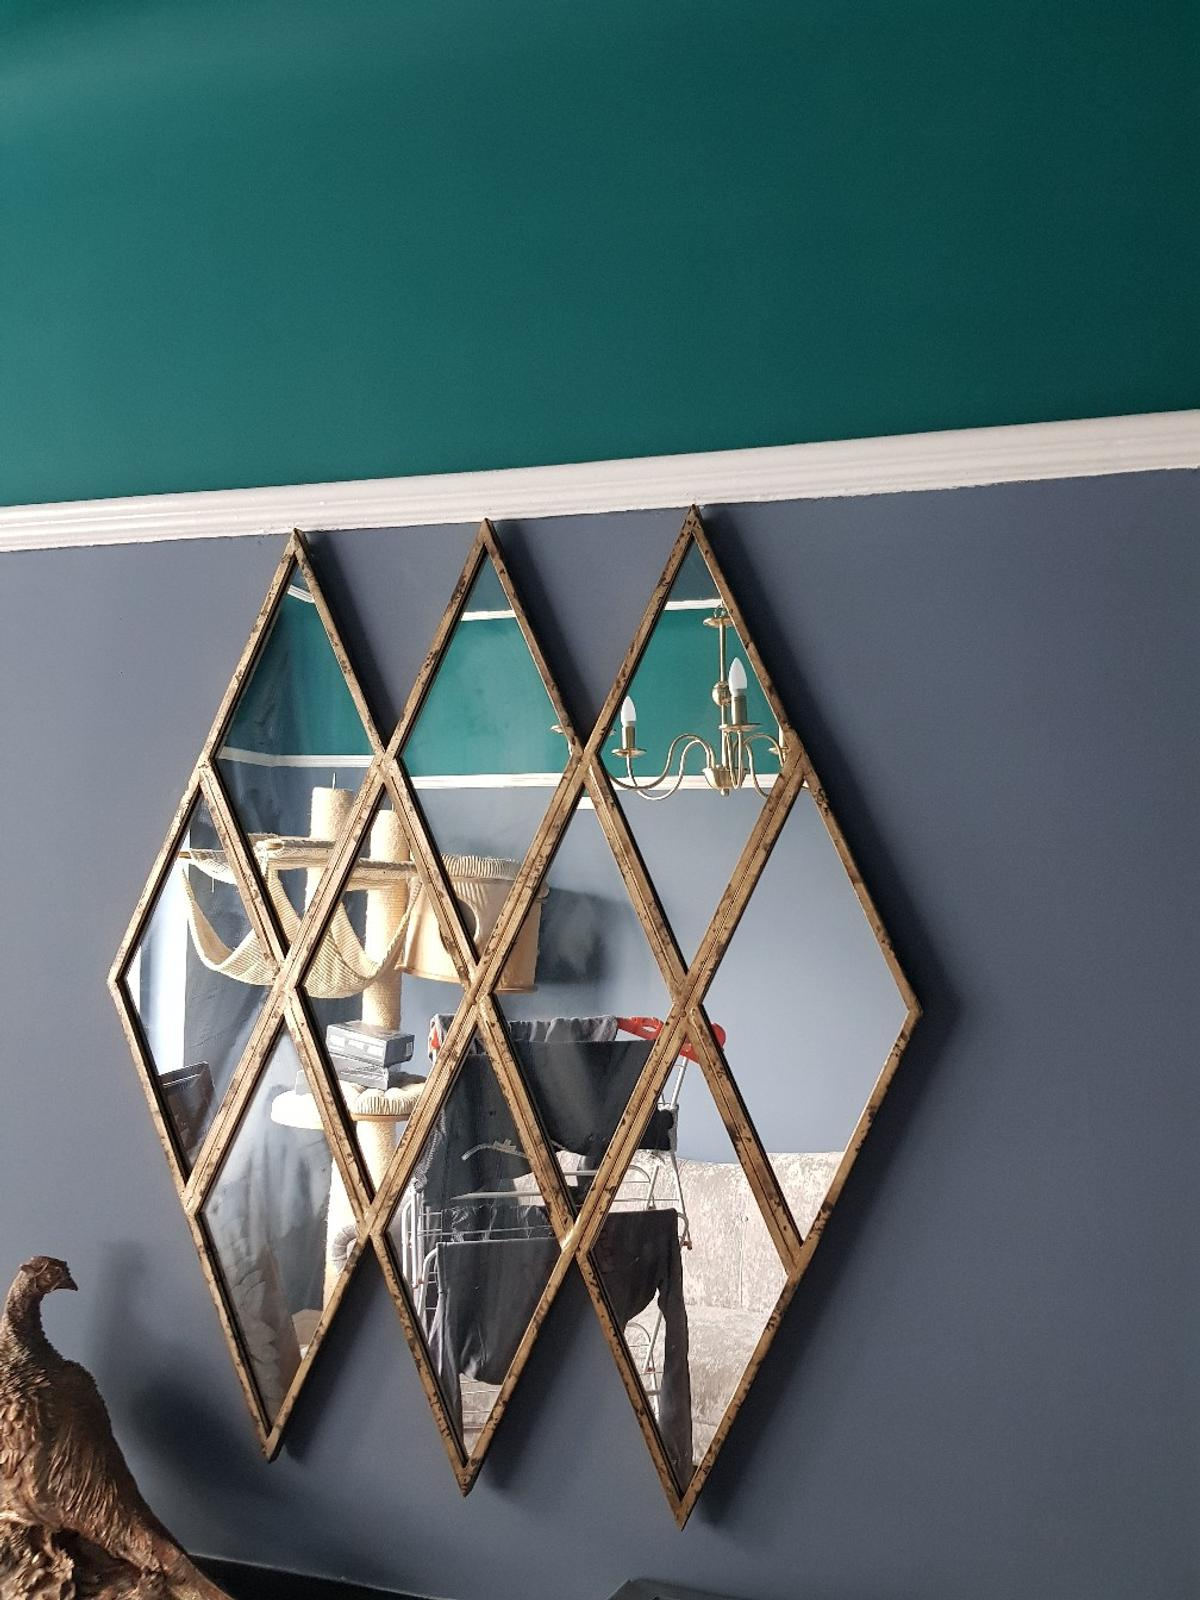 Gold Diamond Shaped Mirror In L19 Liverpool For 35 00 For Sale Shpock